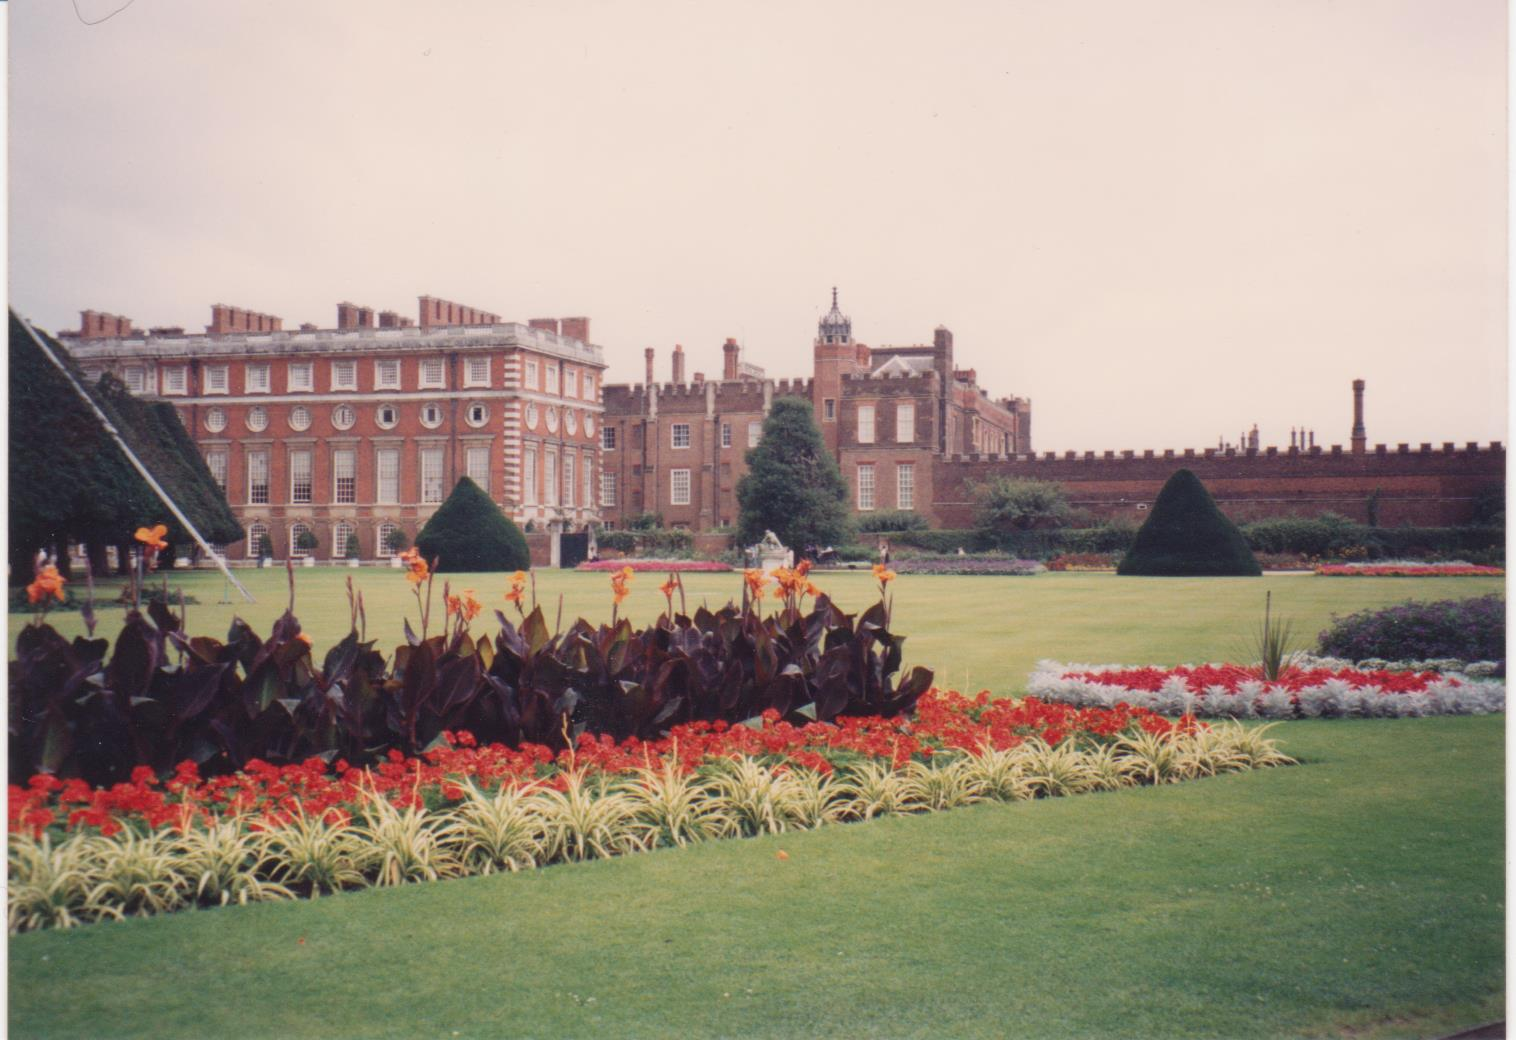 Hampton Court Palace, taken by me